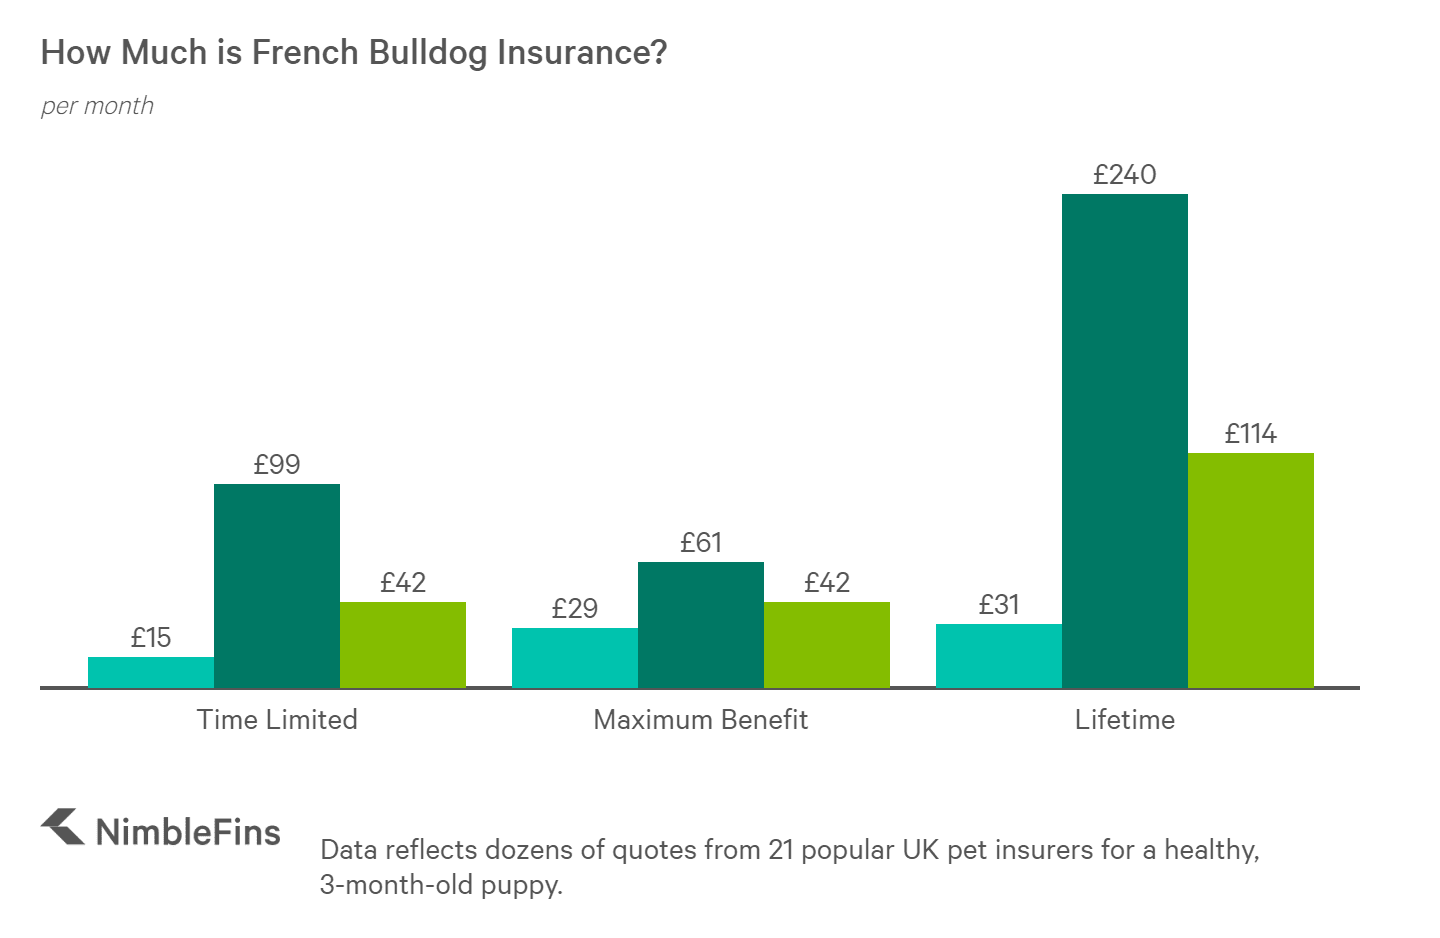 Chart showing the average cost of French Bulldog insurance